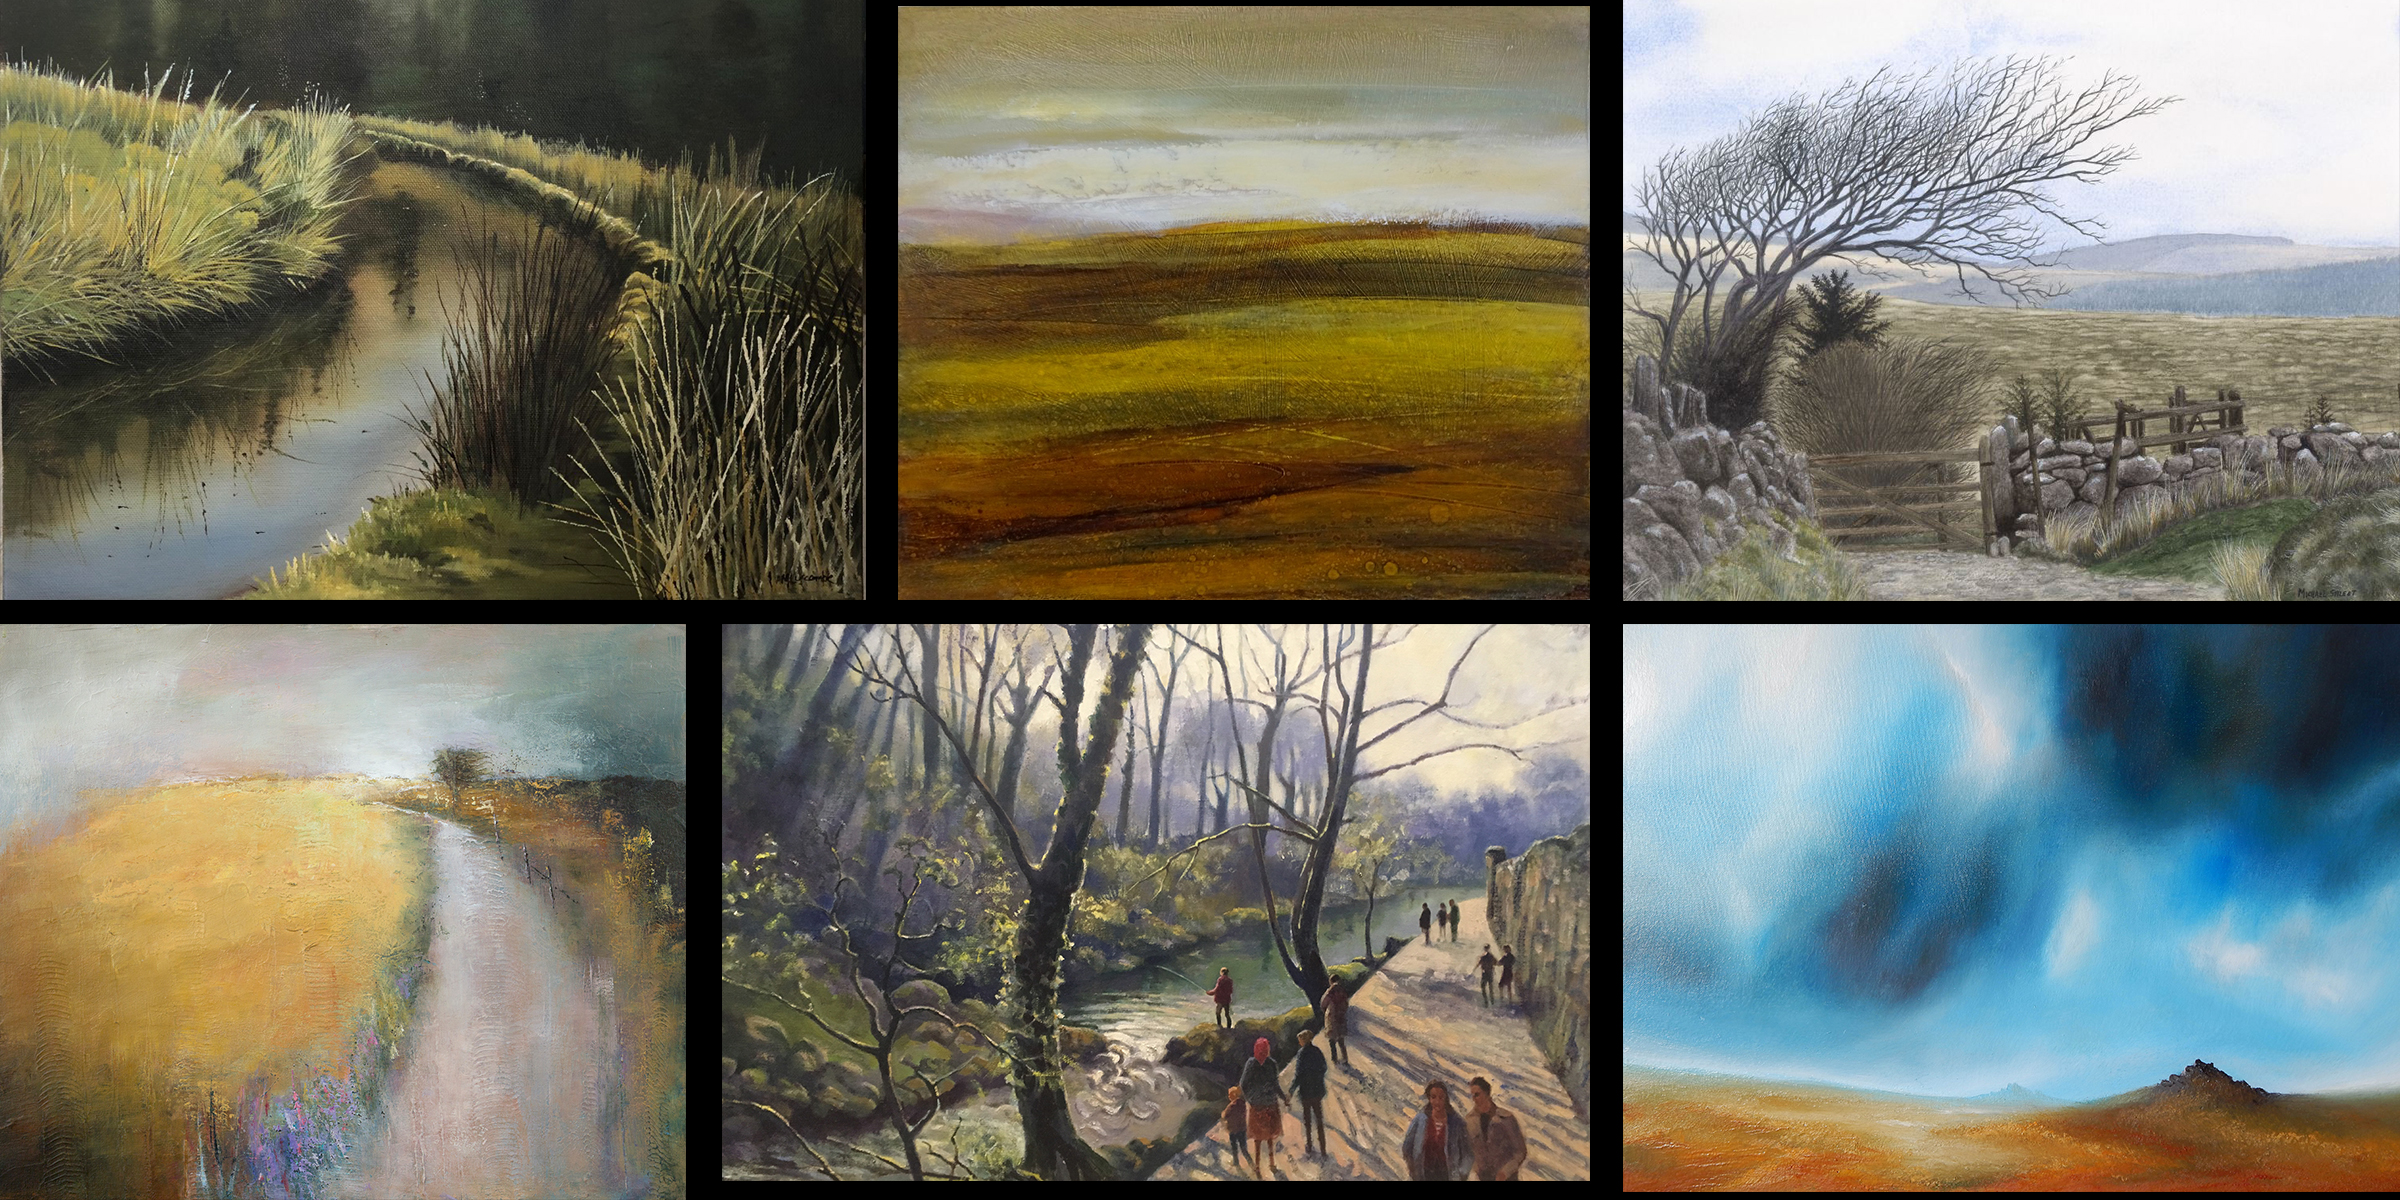 Landscape and gardens exhibition on now!